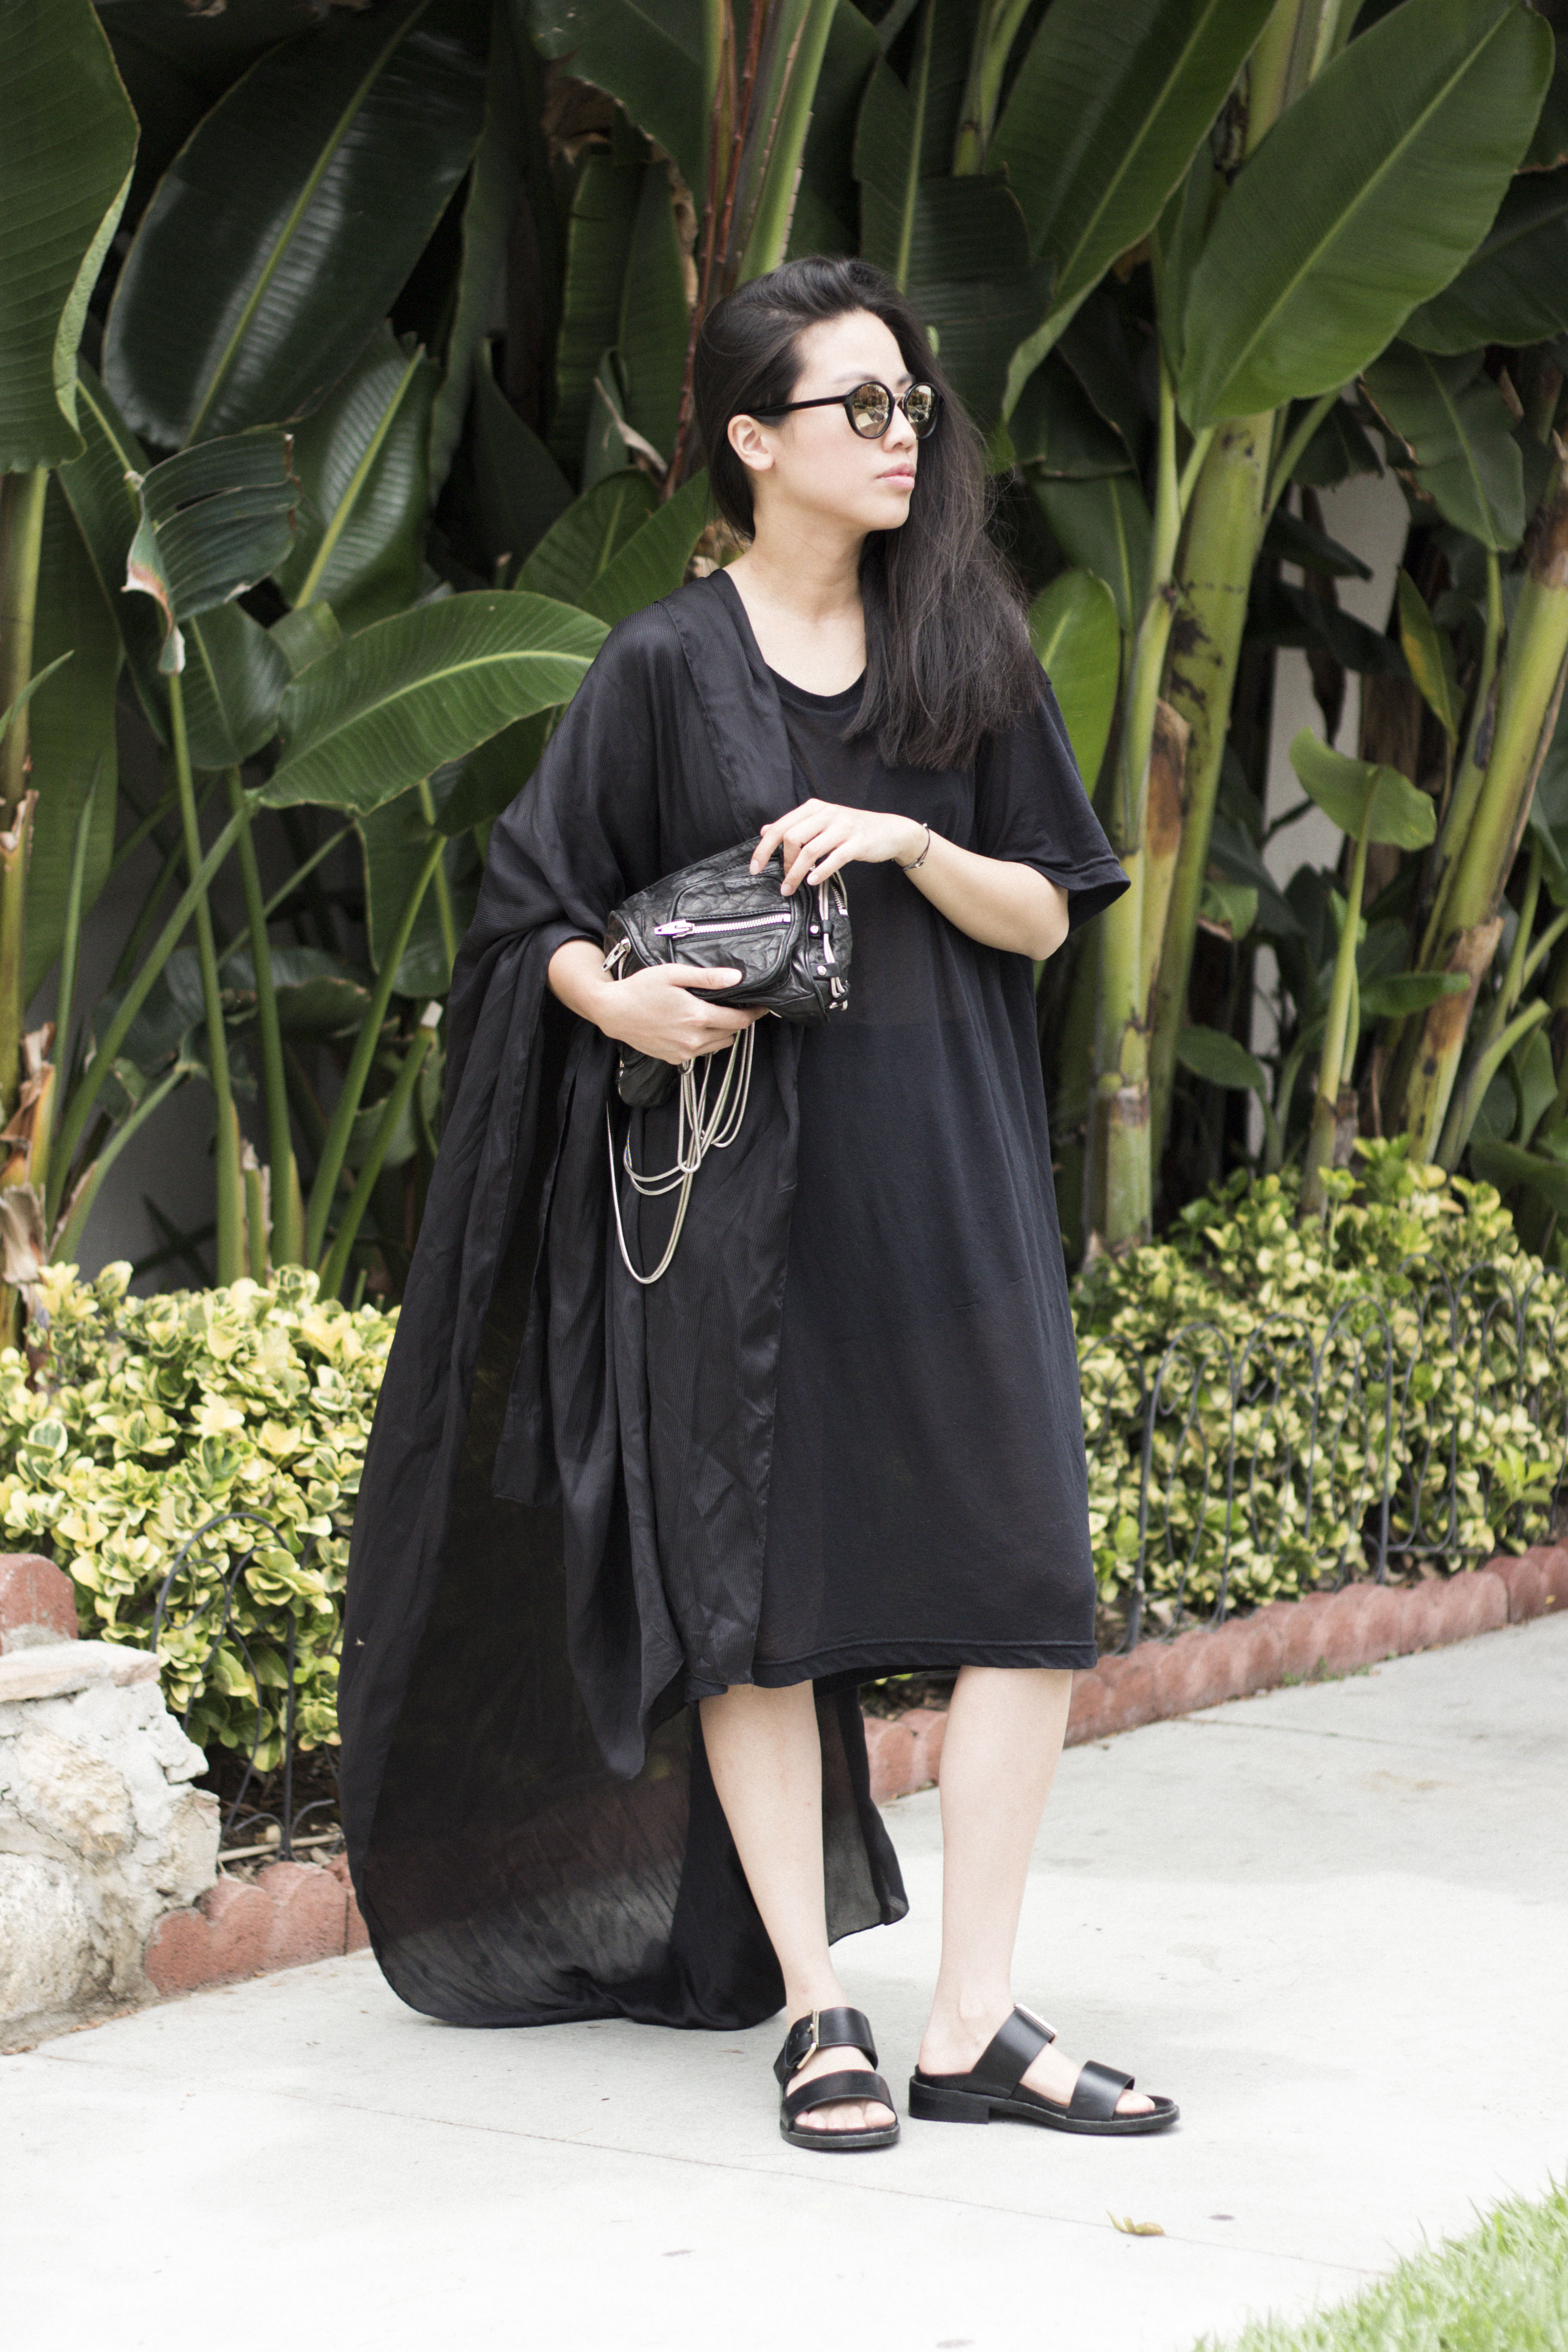 I HEART ALICE Looks: VIU Shades, OAK NY Shirtdress & Alexander Wang Brenda Bag